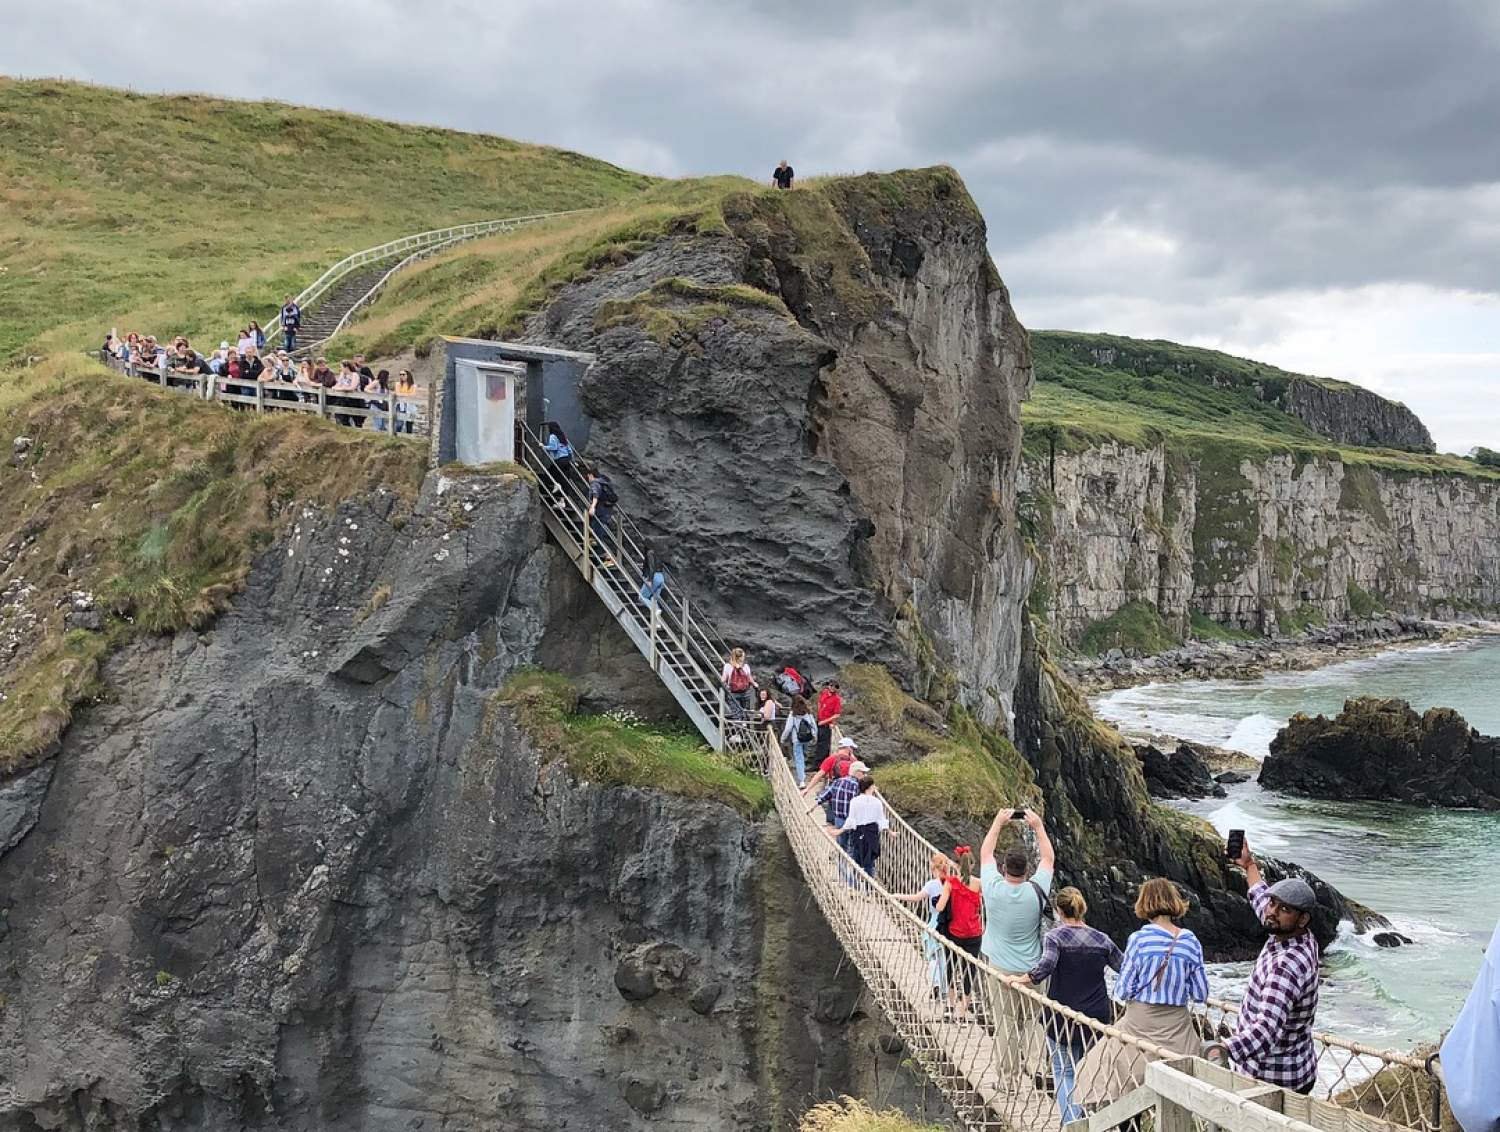 The famous suspended bridge of Ireland: Carrick a Rede